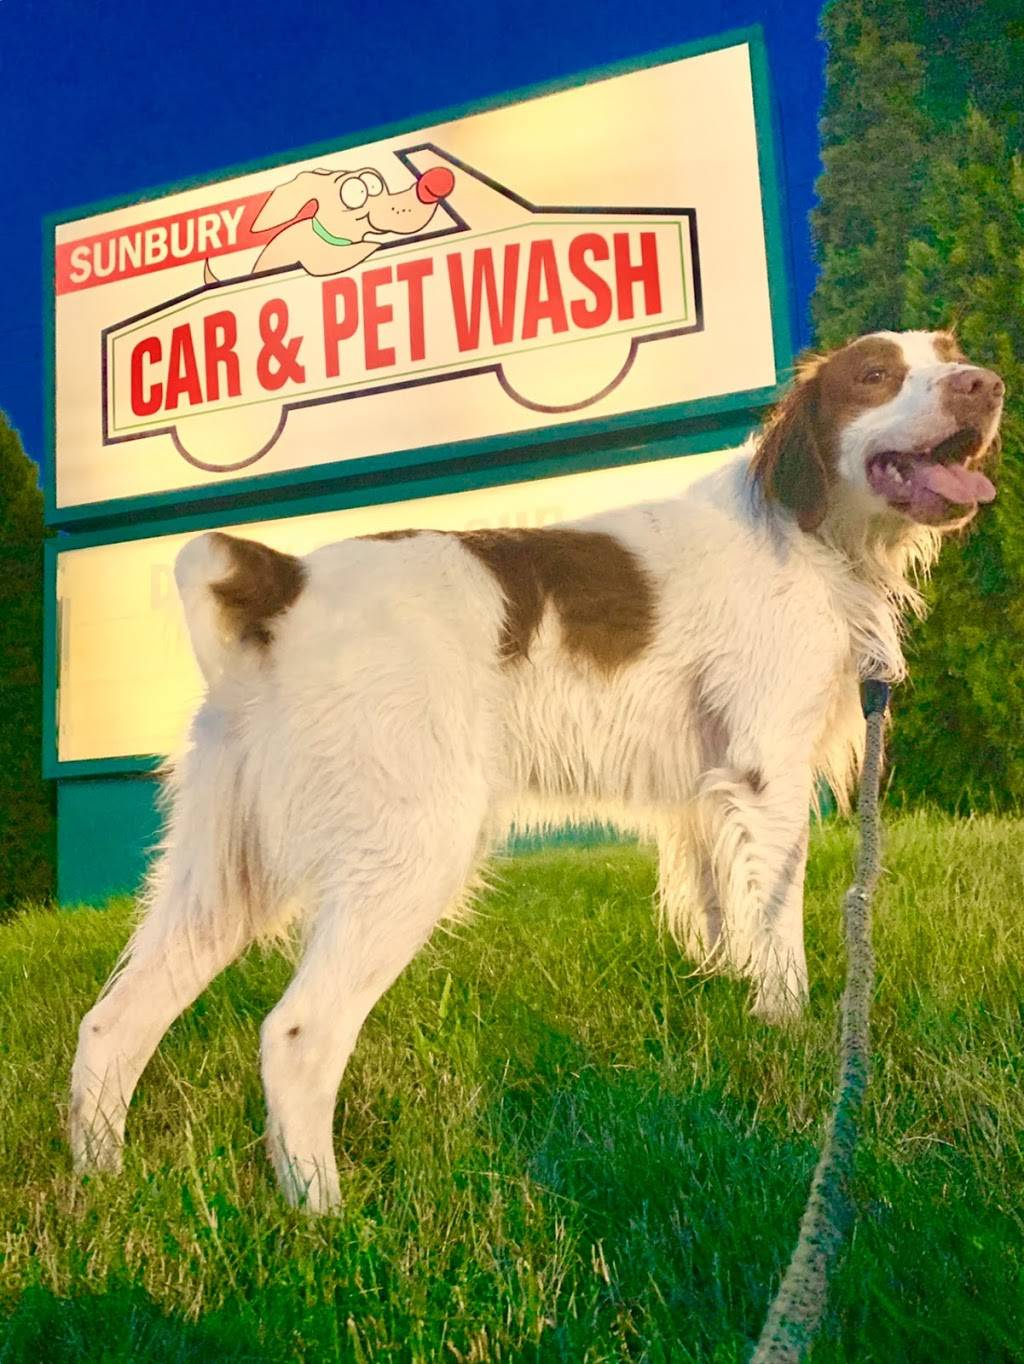 Sunbury Auto & Pet Wash - car wash  | Photo 7 of 7 | Address: 4353 Executive Pkwy, Westerville, OH 43081, USA | Phone: (614) 818-4669